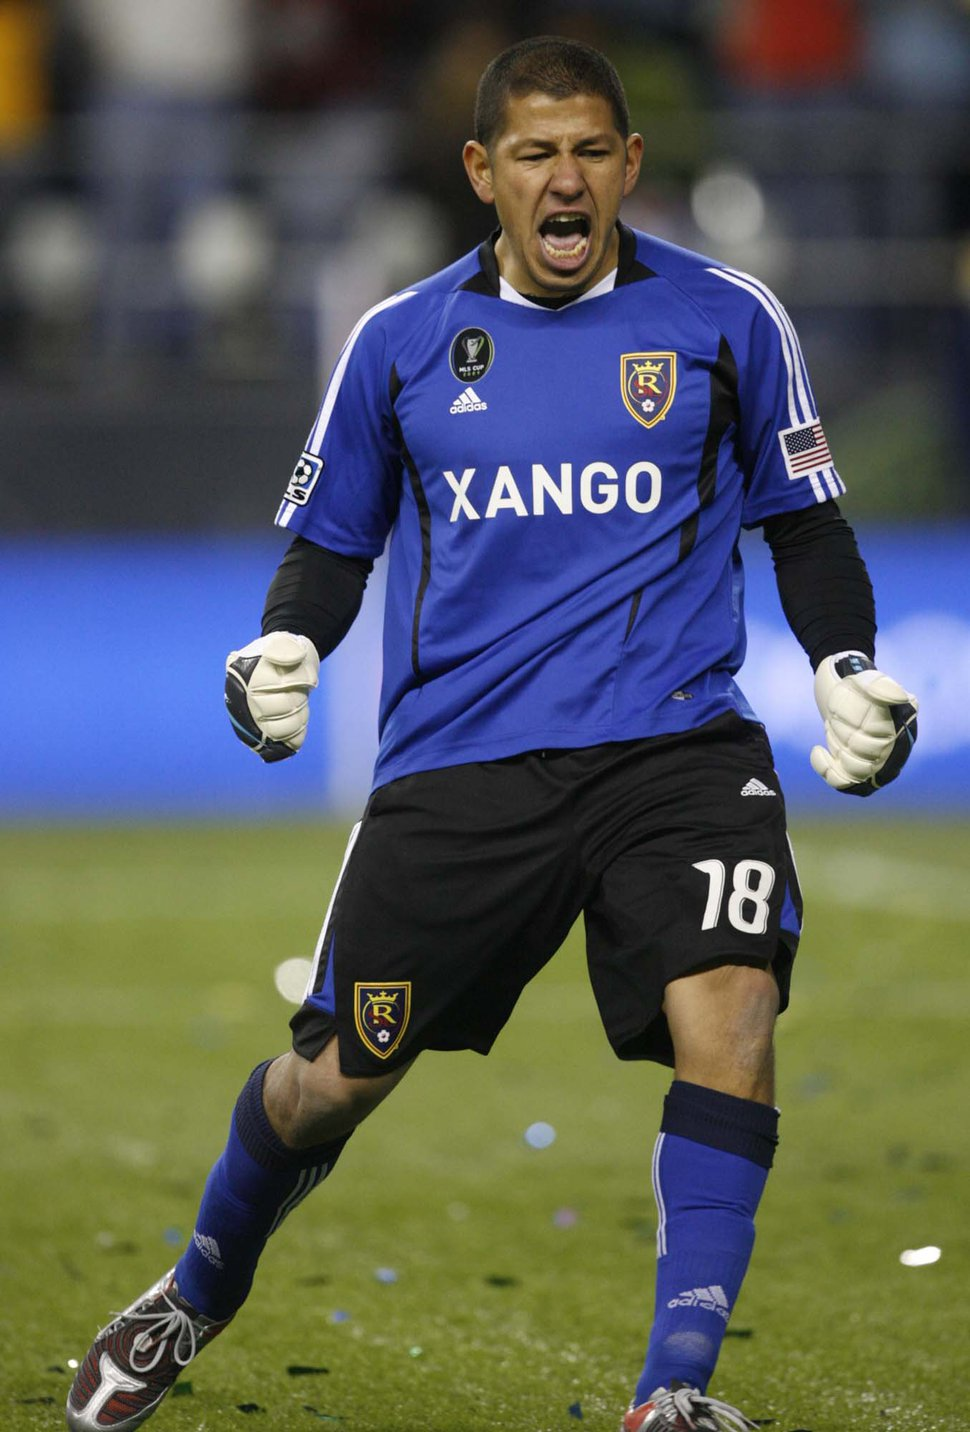 (Trent Nelson | Tribune file photo) Nick Rimando celebrates as Real Salt Lake beats LA Galaxy in the MLS Cup Sunday, November 22 2009 at Qwest Field in Seattle.